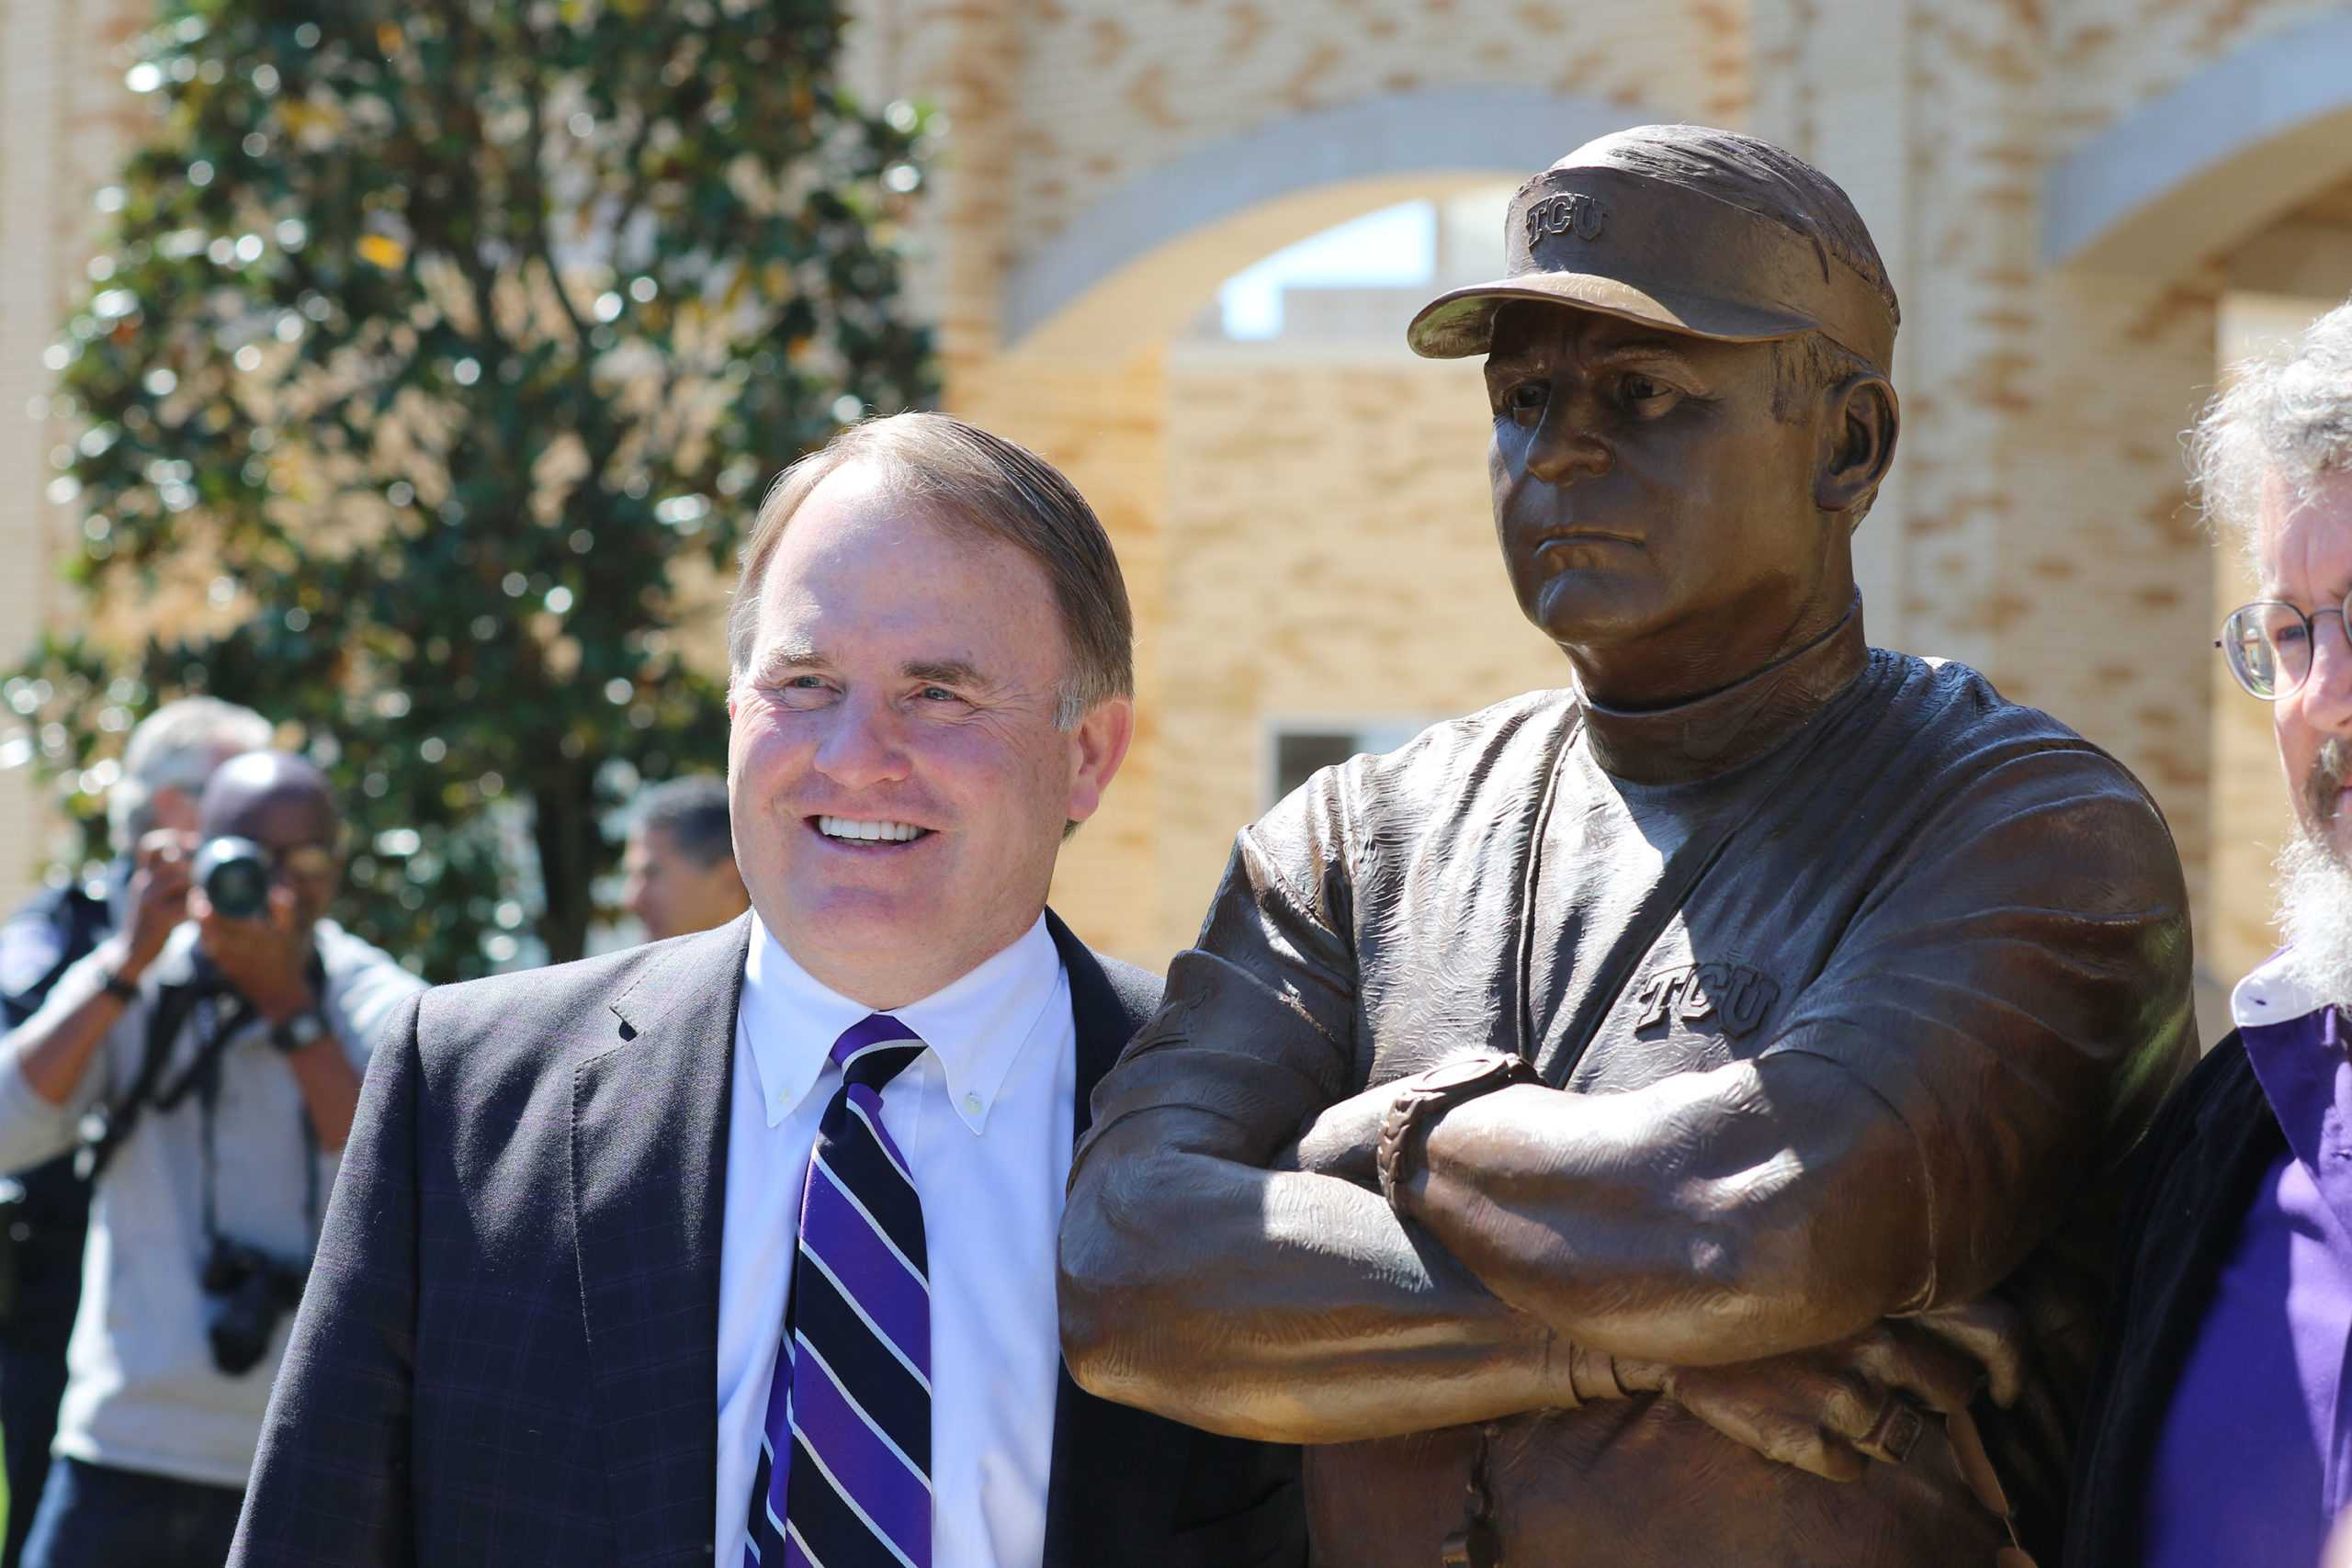 Statues unveiled to honor TCU football icons Patterson, Meyer, O'Brien